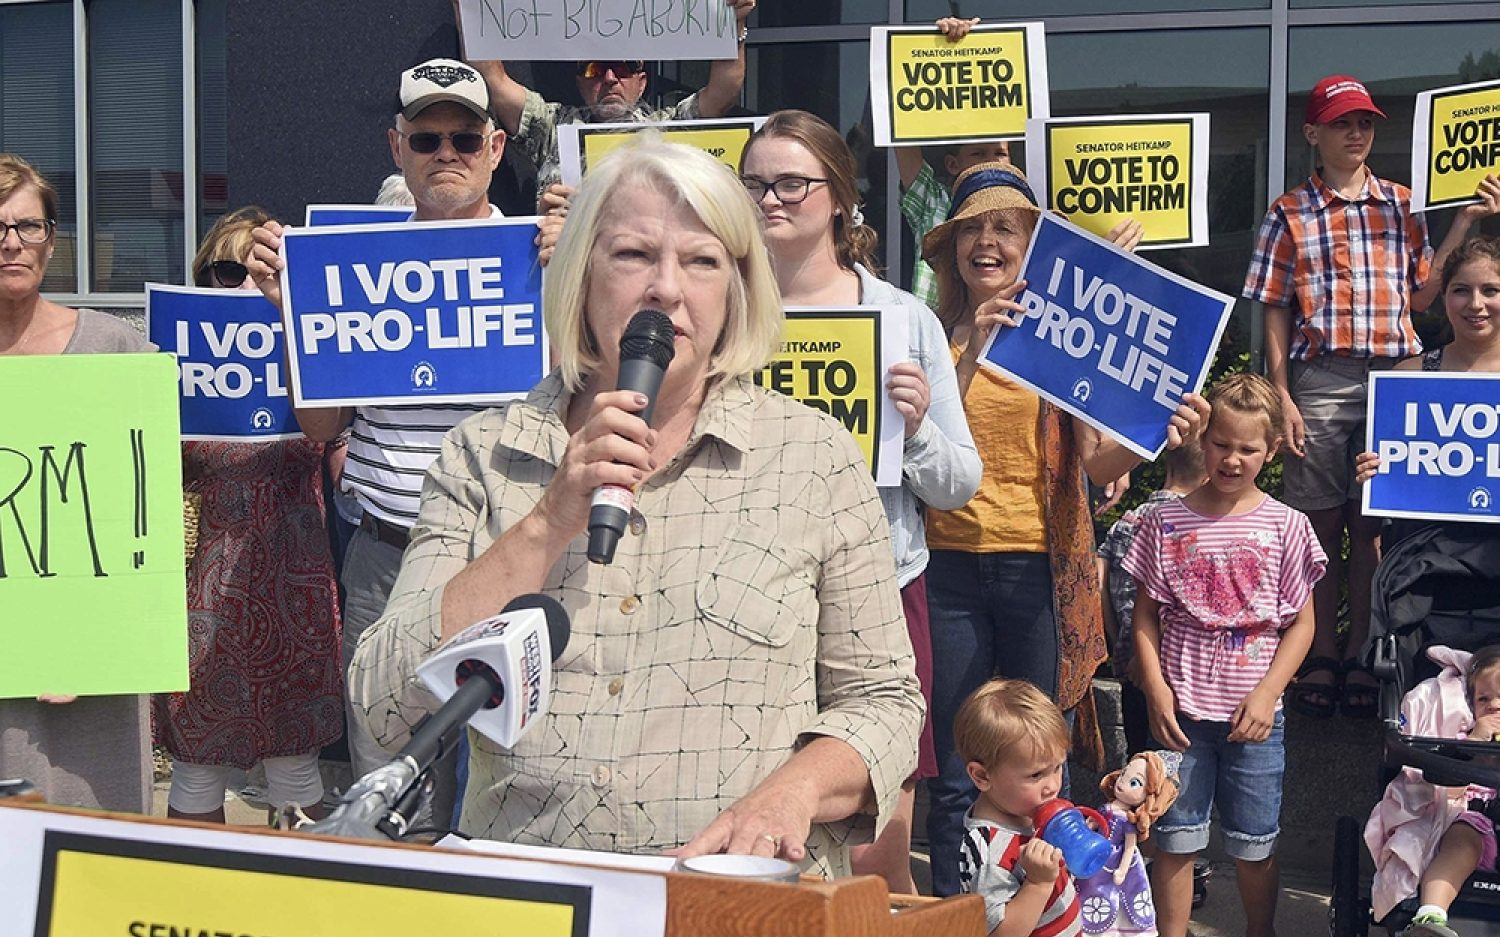 Pro-lifers give Kavanaugh a thumbs-up